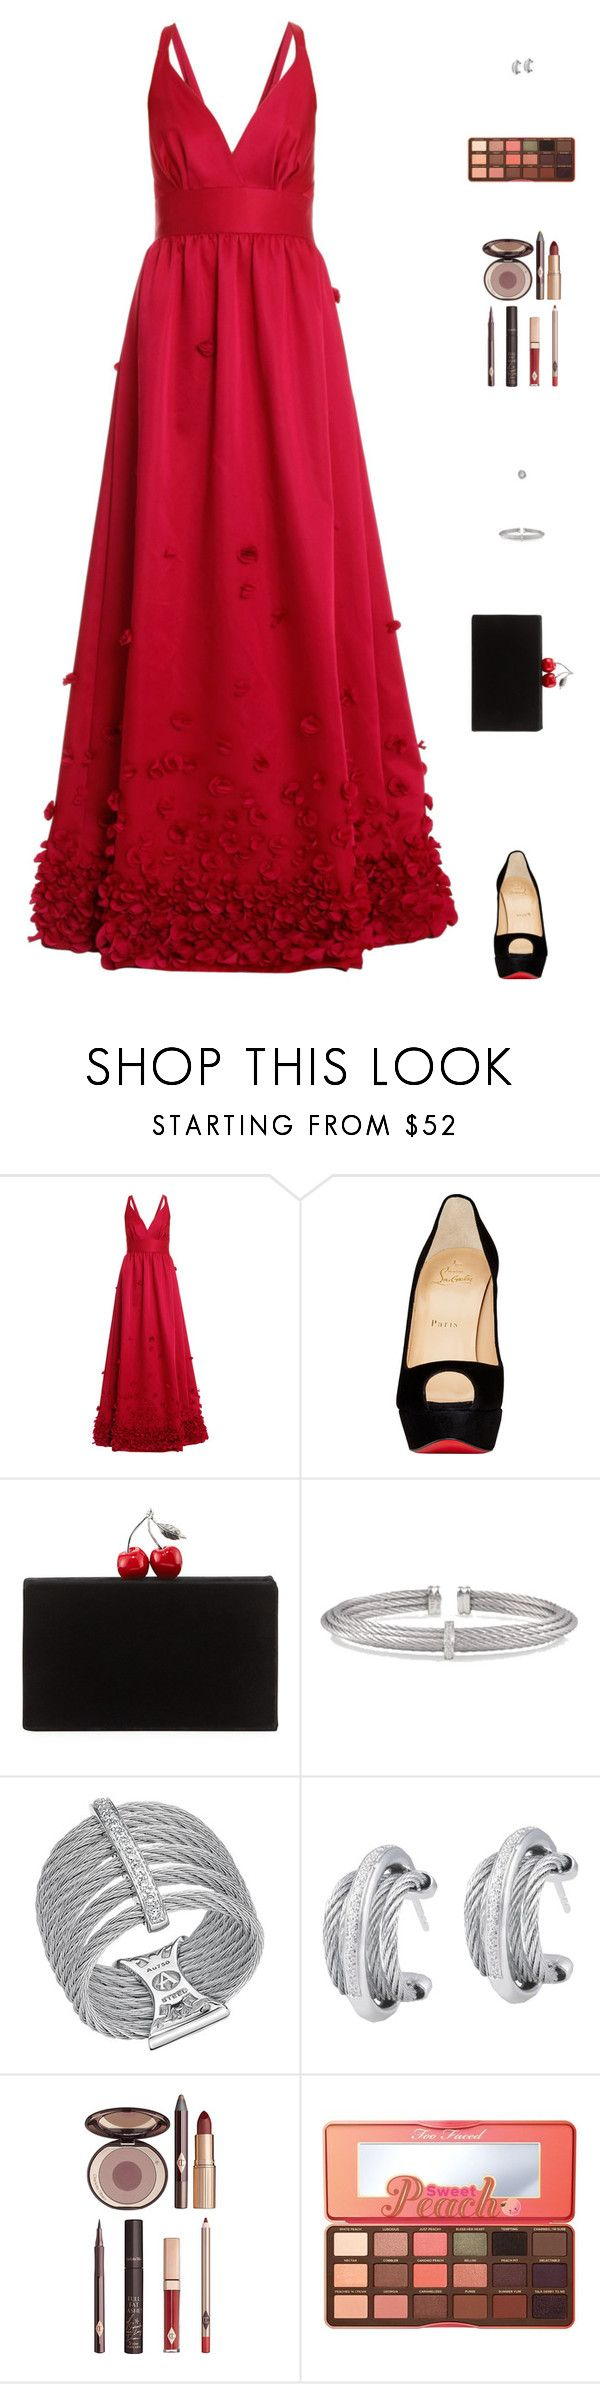 """""""Sin título #4968"""" by mdmsb on Polyvore featuring moda, Temperley London, Christian Louboutin, Edie Parker, Alor, Charlotte Tilbury y Too Faced Cosmetics"""